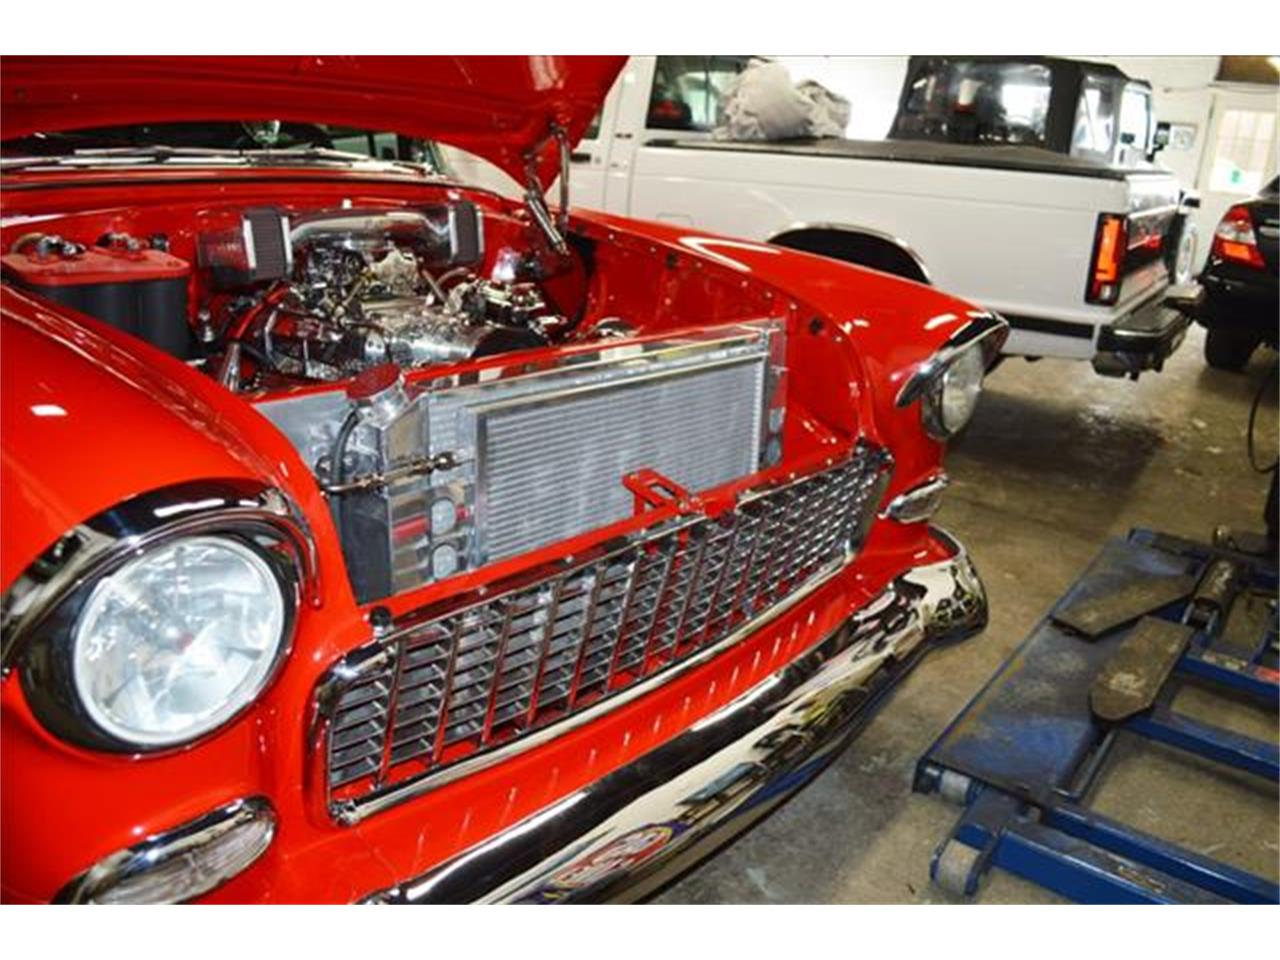 Large Picture of 1955 Chevrolet Nomad located in New York - $89,000.00 Offered by AB Classic Cars - J168